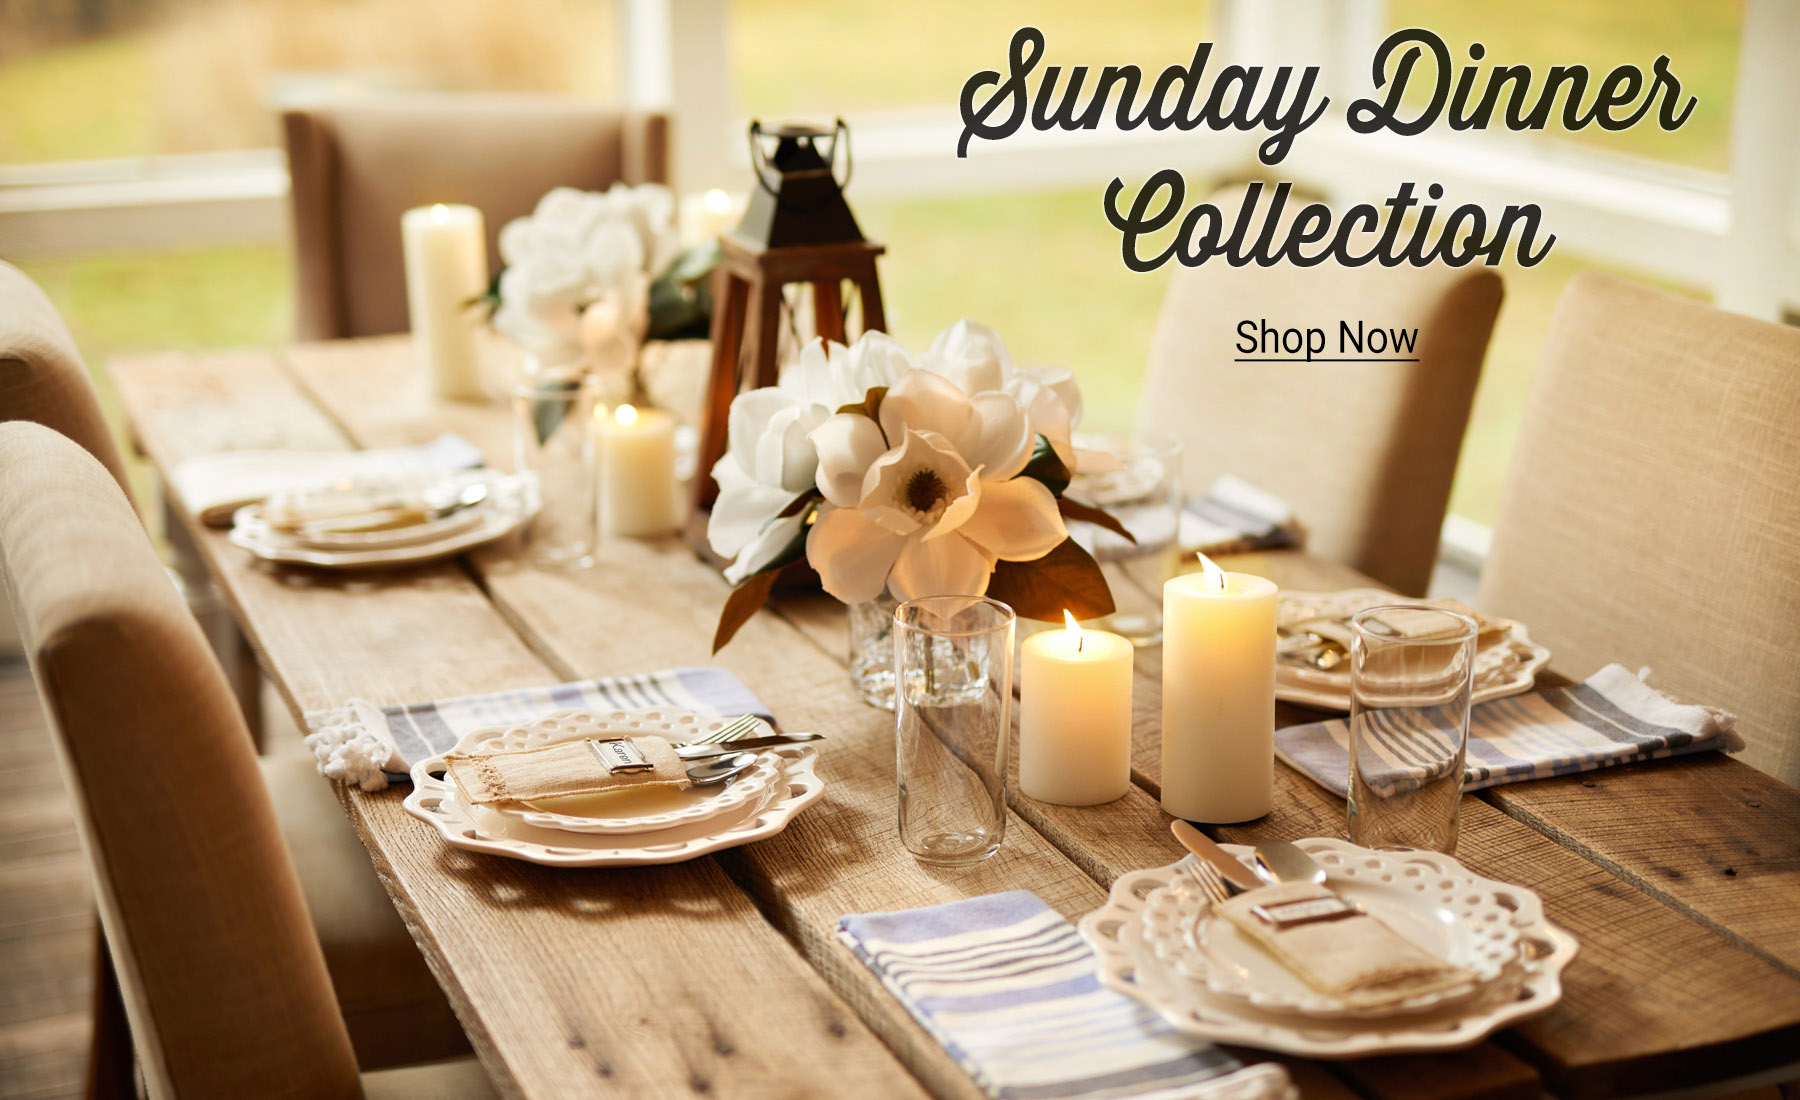 Sunday Dinner Collection